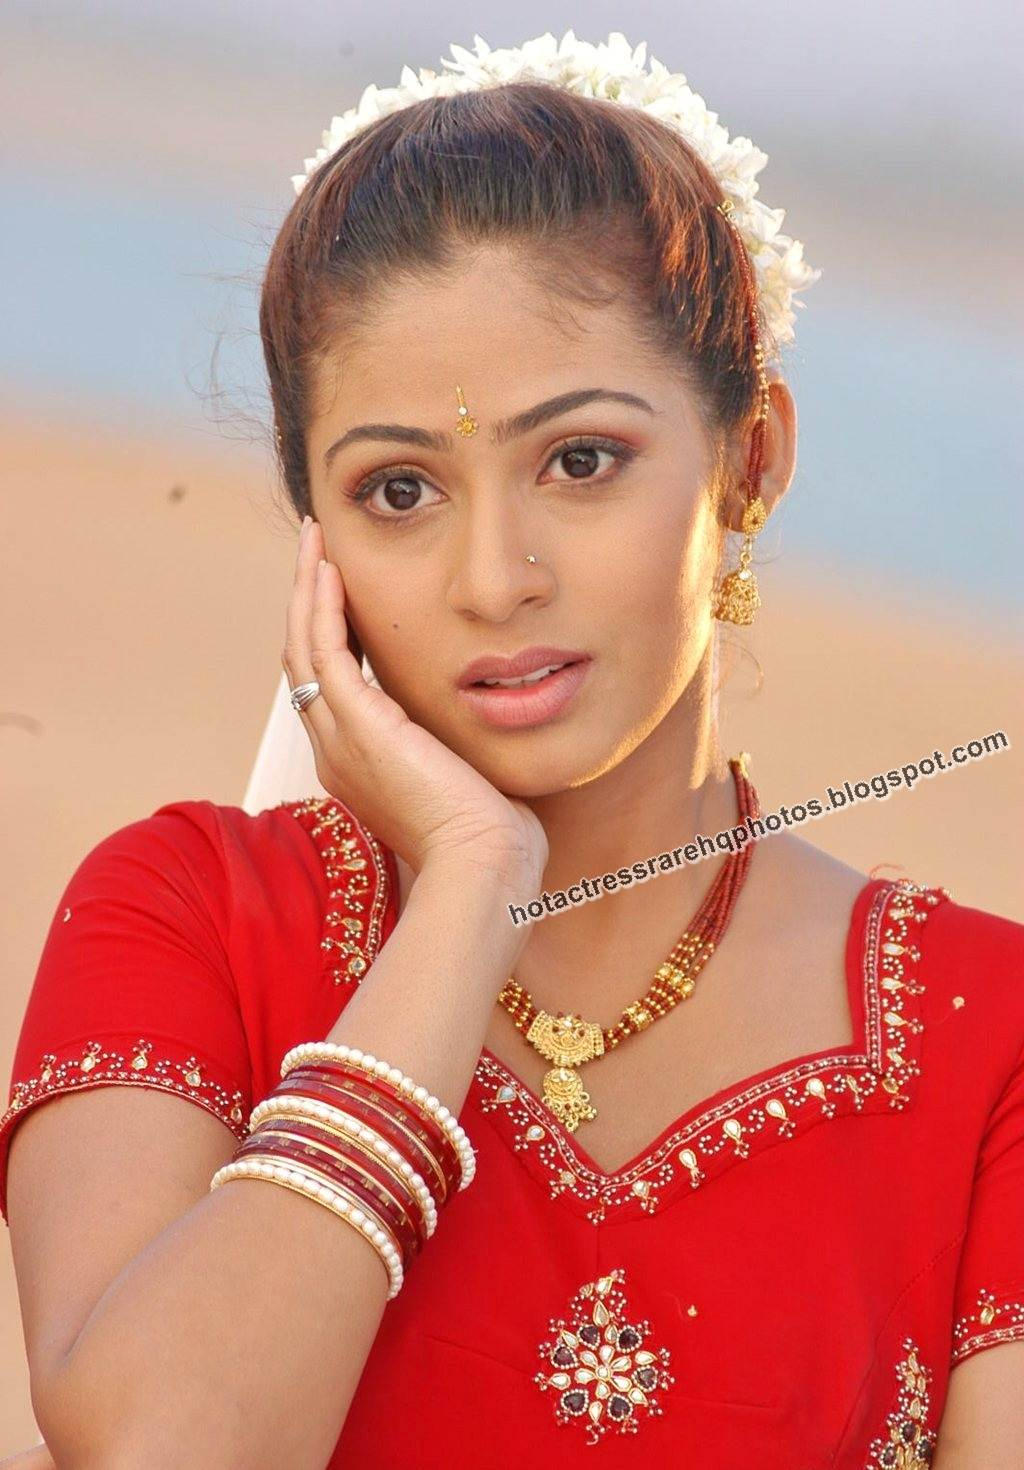 sada tamil actress thompson navel hottest indian rare unreleased stills photoshoot unseen lehenga uhq hq